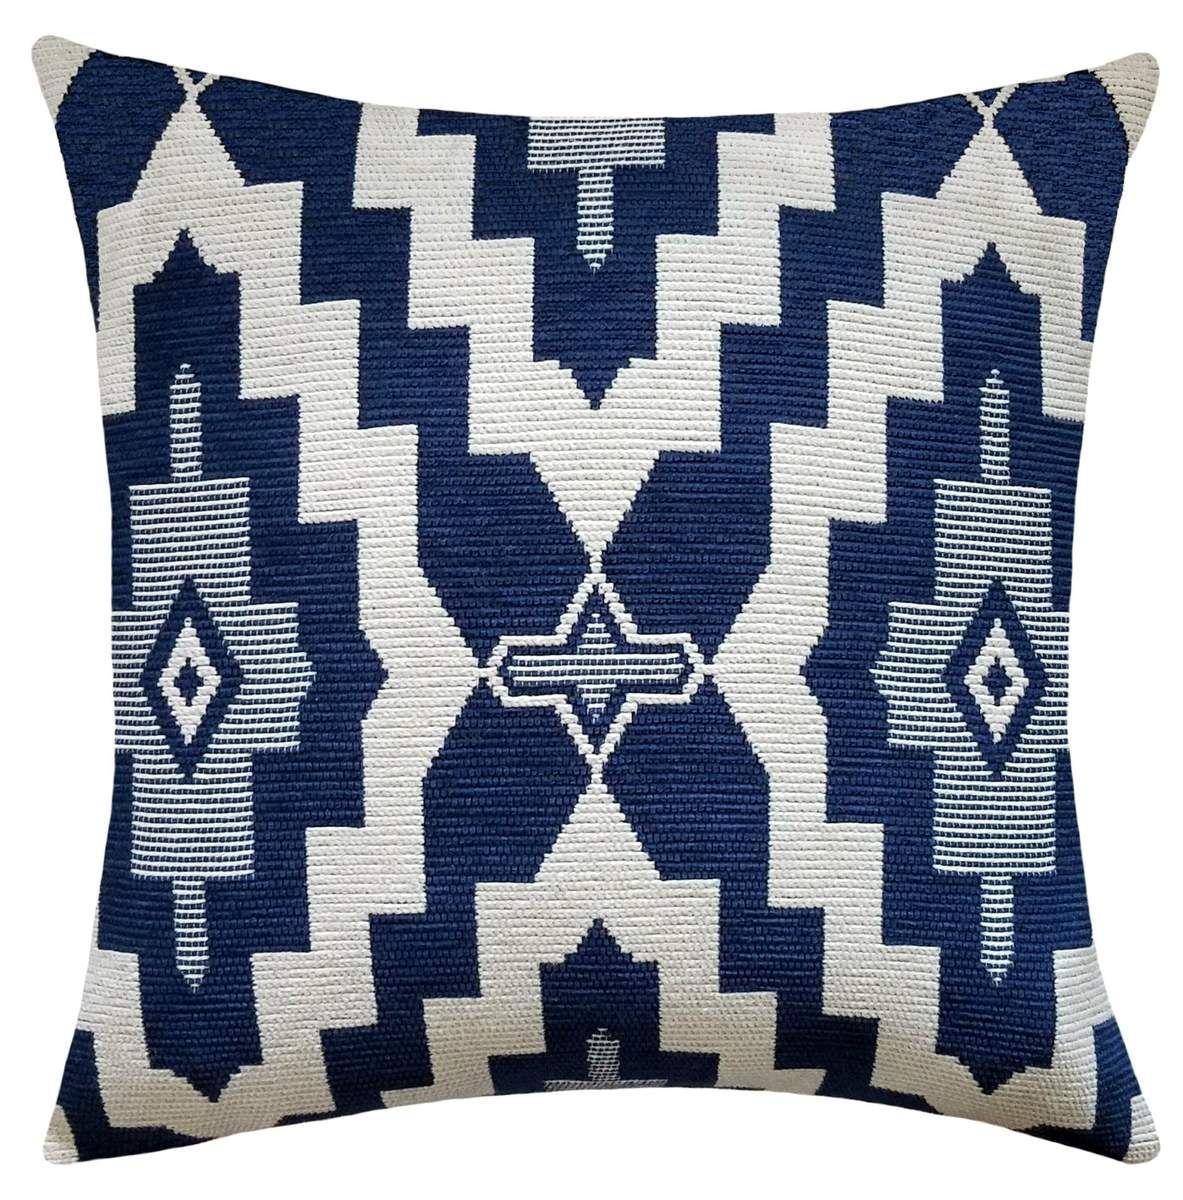 Taos Navy Blue Southwestern Geometric Pillow Geometric Pillow